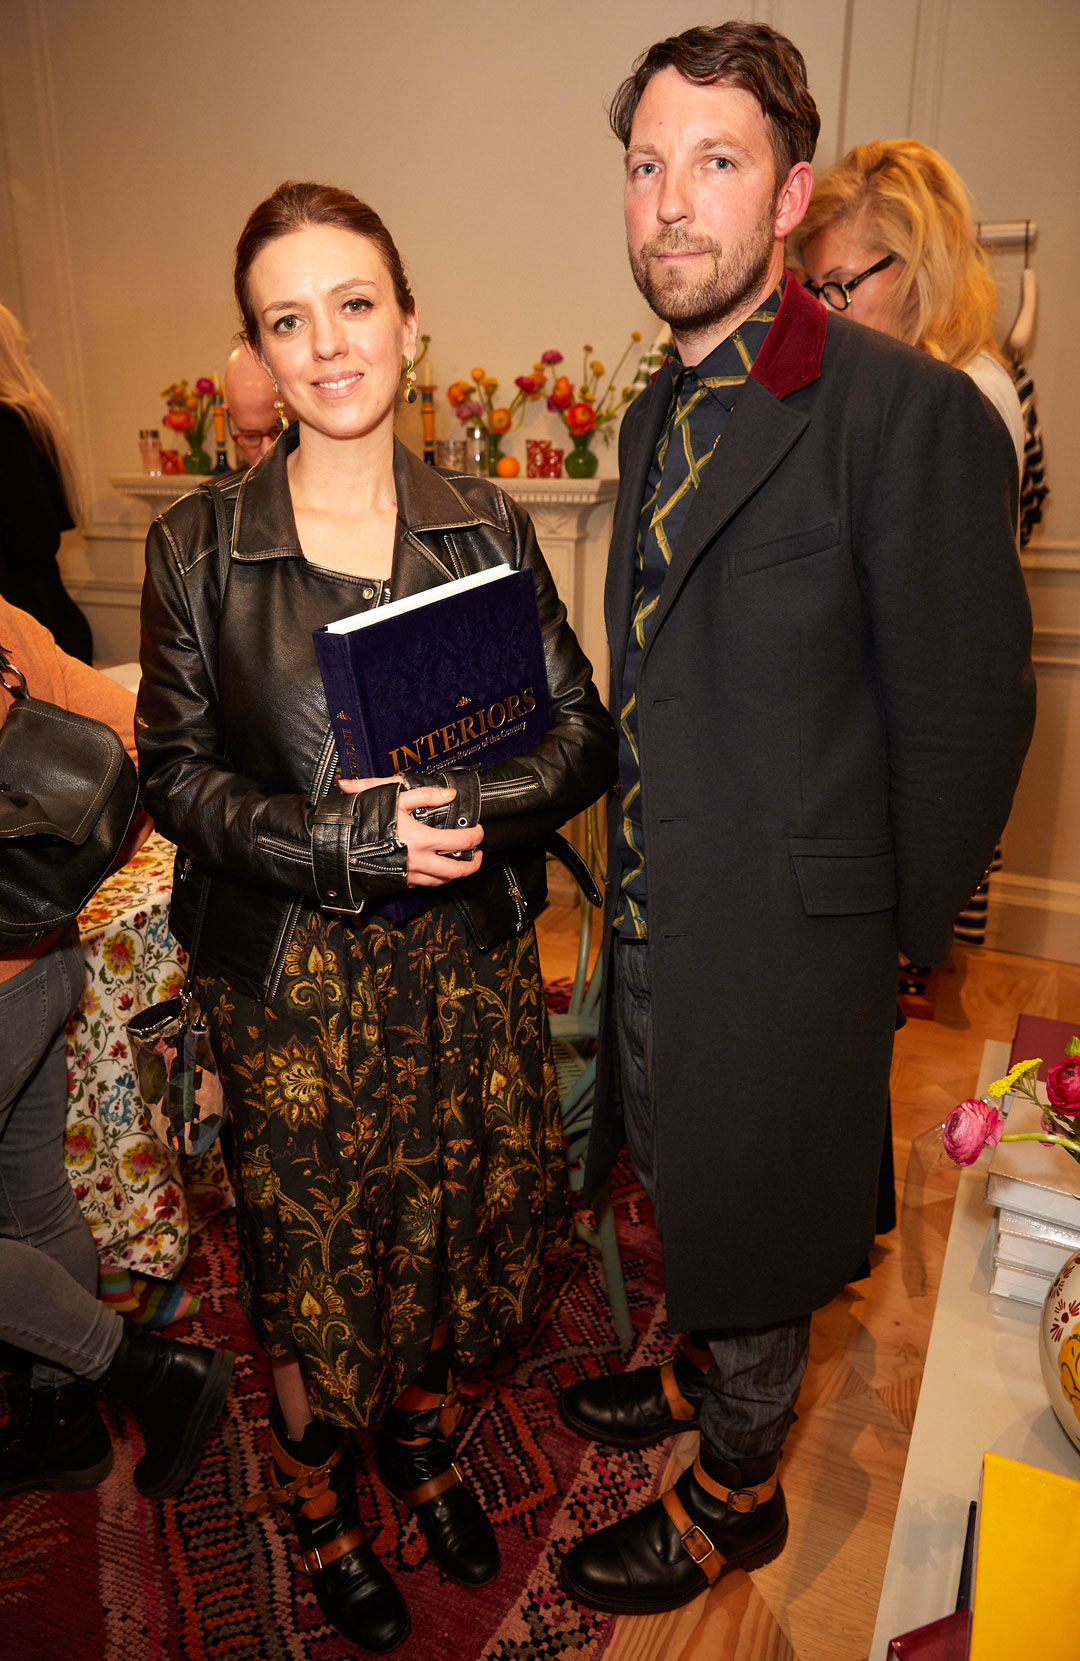 Frieda Gormley and Javvy Royle at the Interiors launch at MATCHESFASHION.COM in London